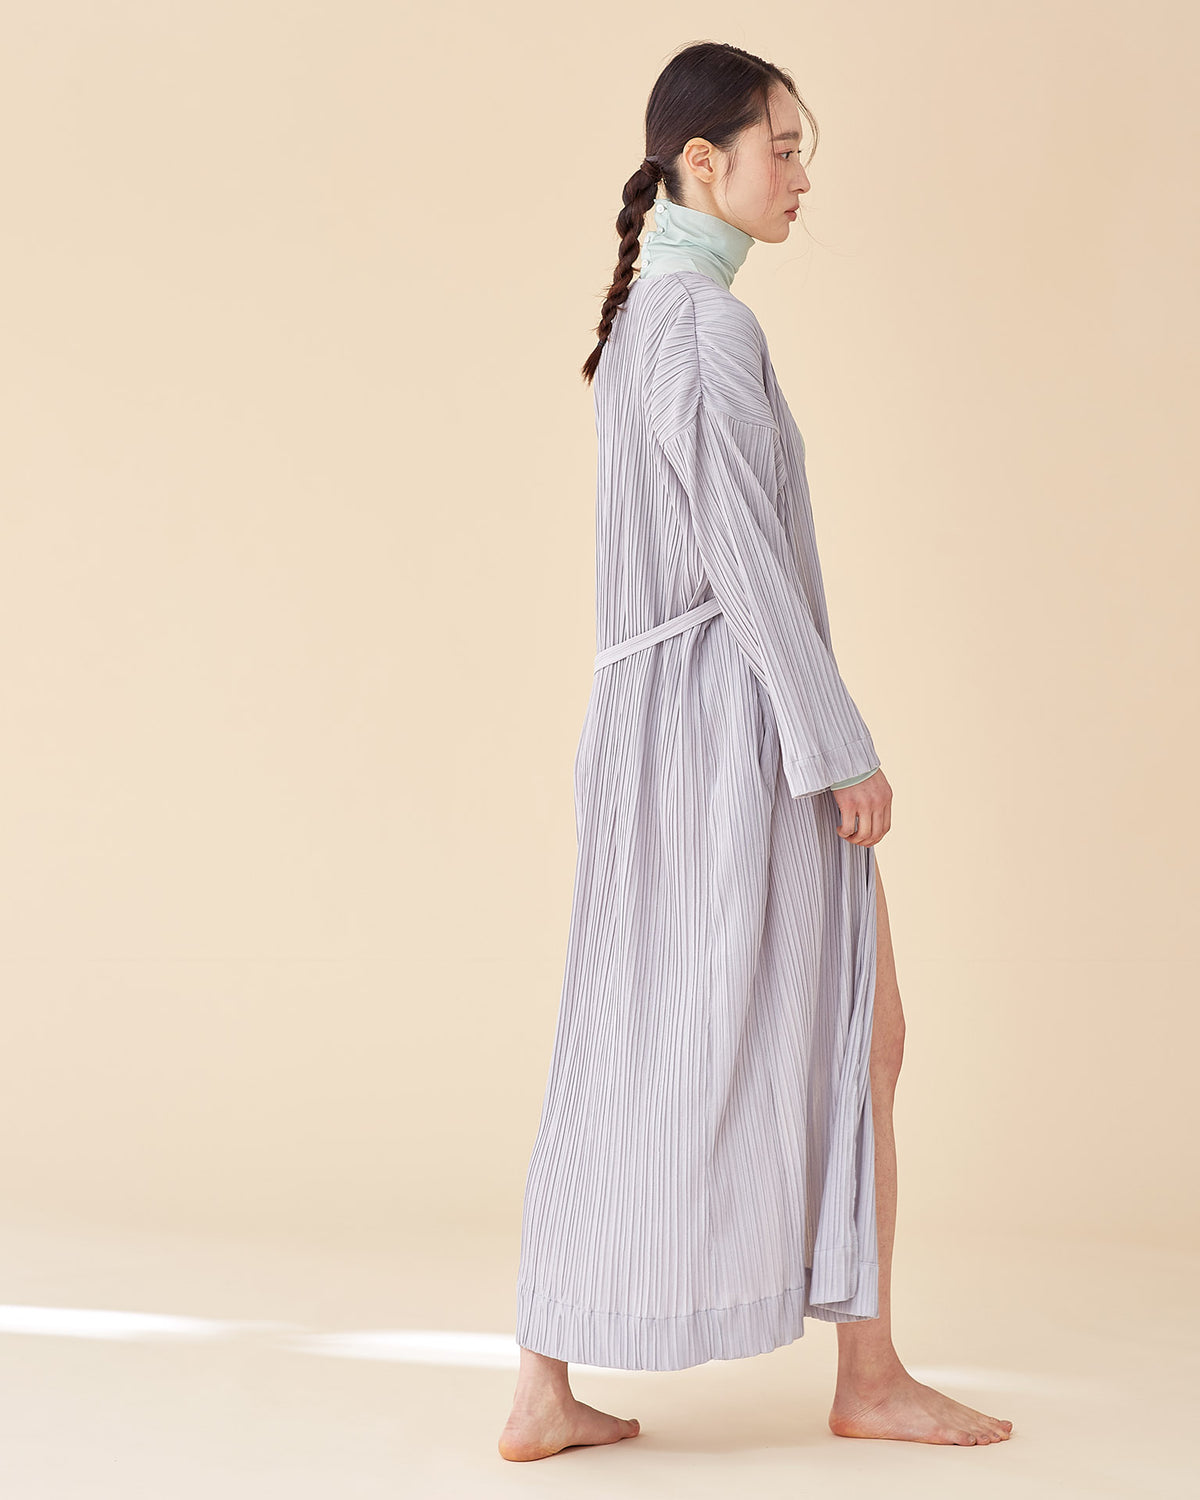 Laura Pleates Robe / Light Grey